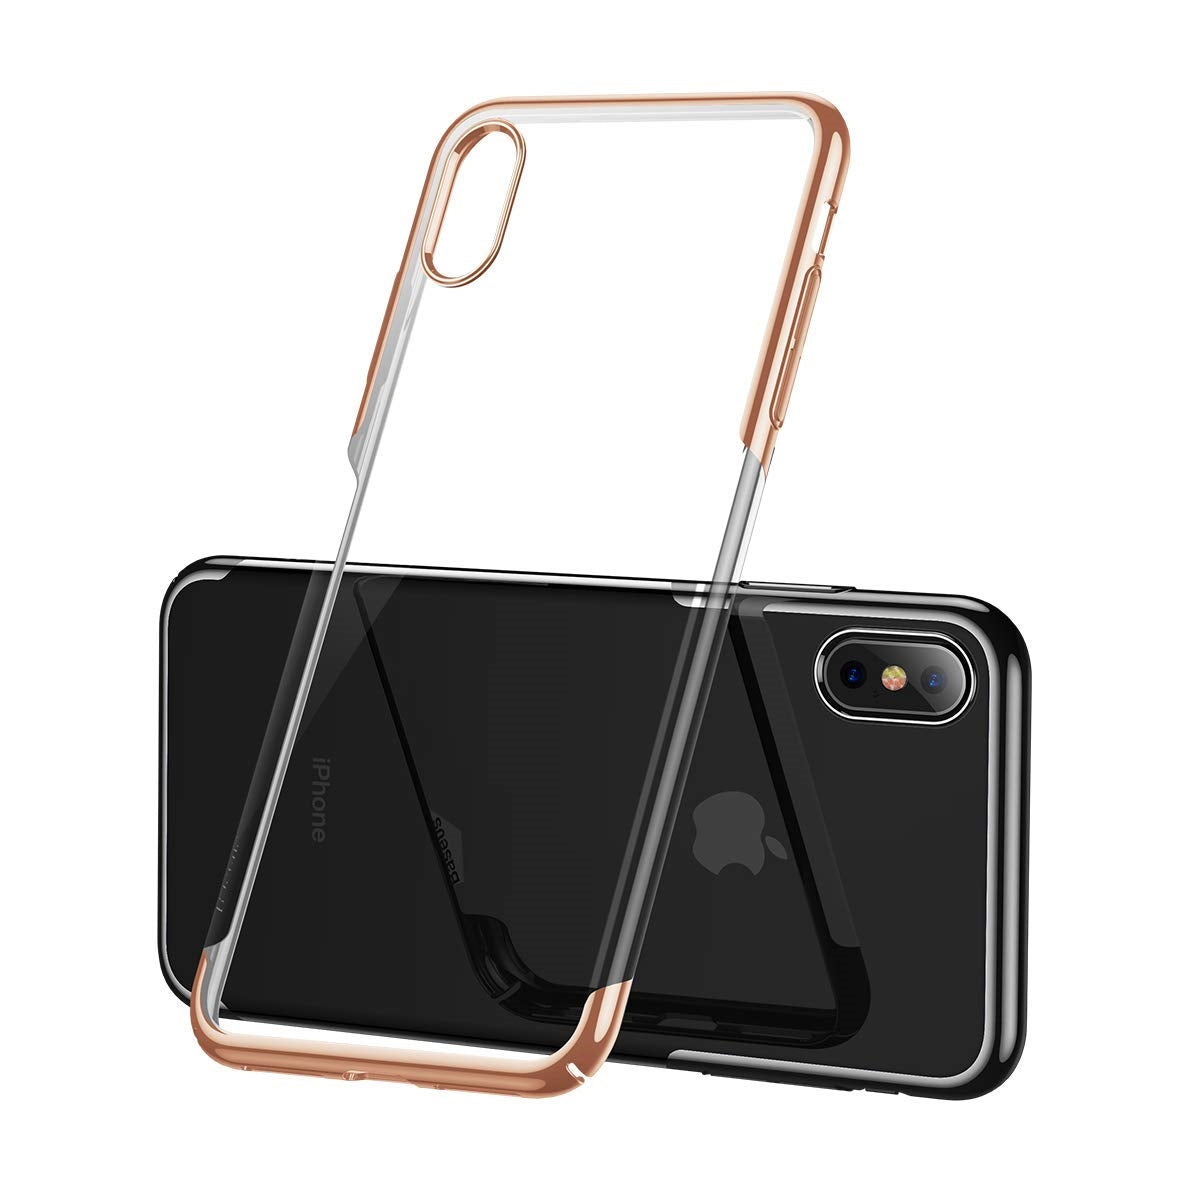 AICase iPhone XR Clear Shinning Electroplating Design PC Bumper Clear Back Protective Case